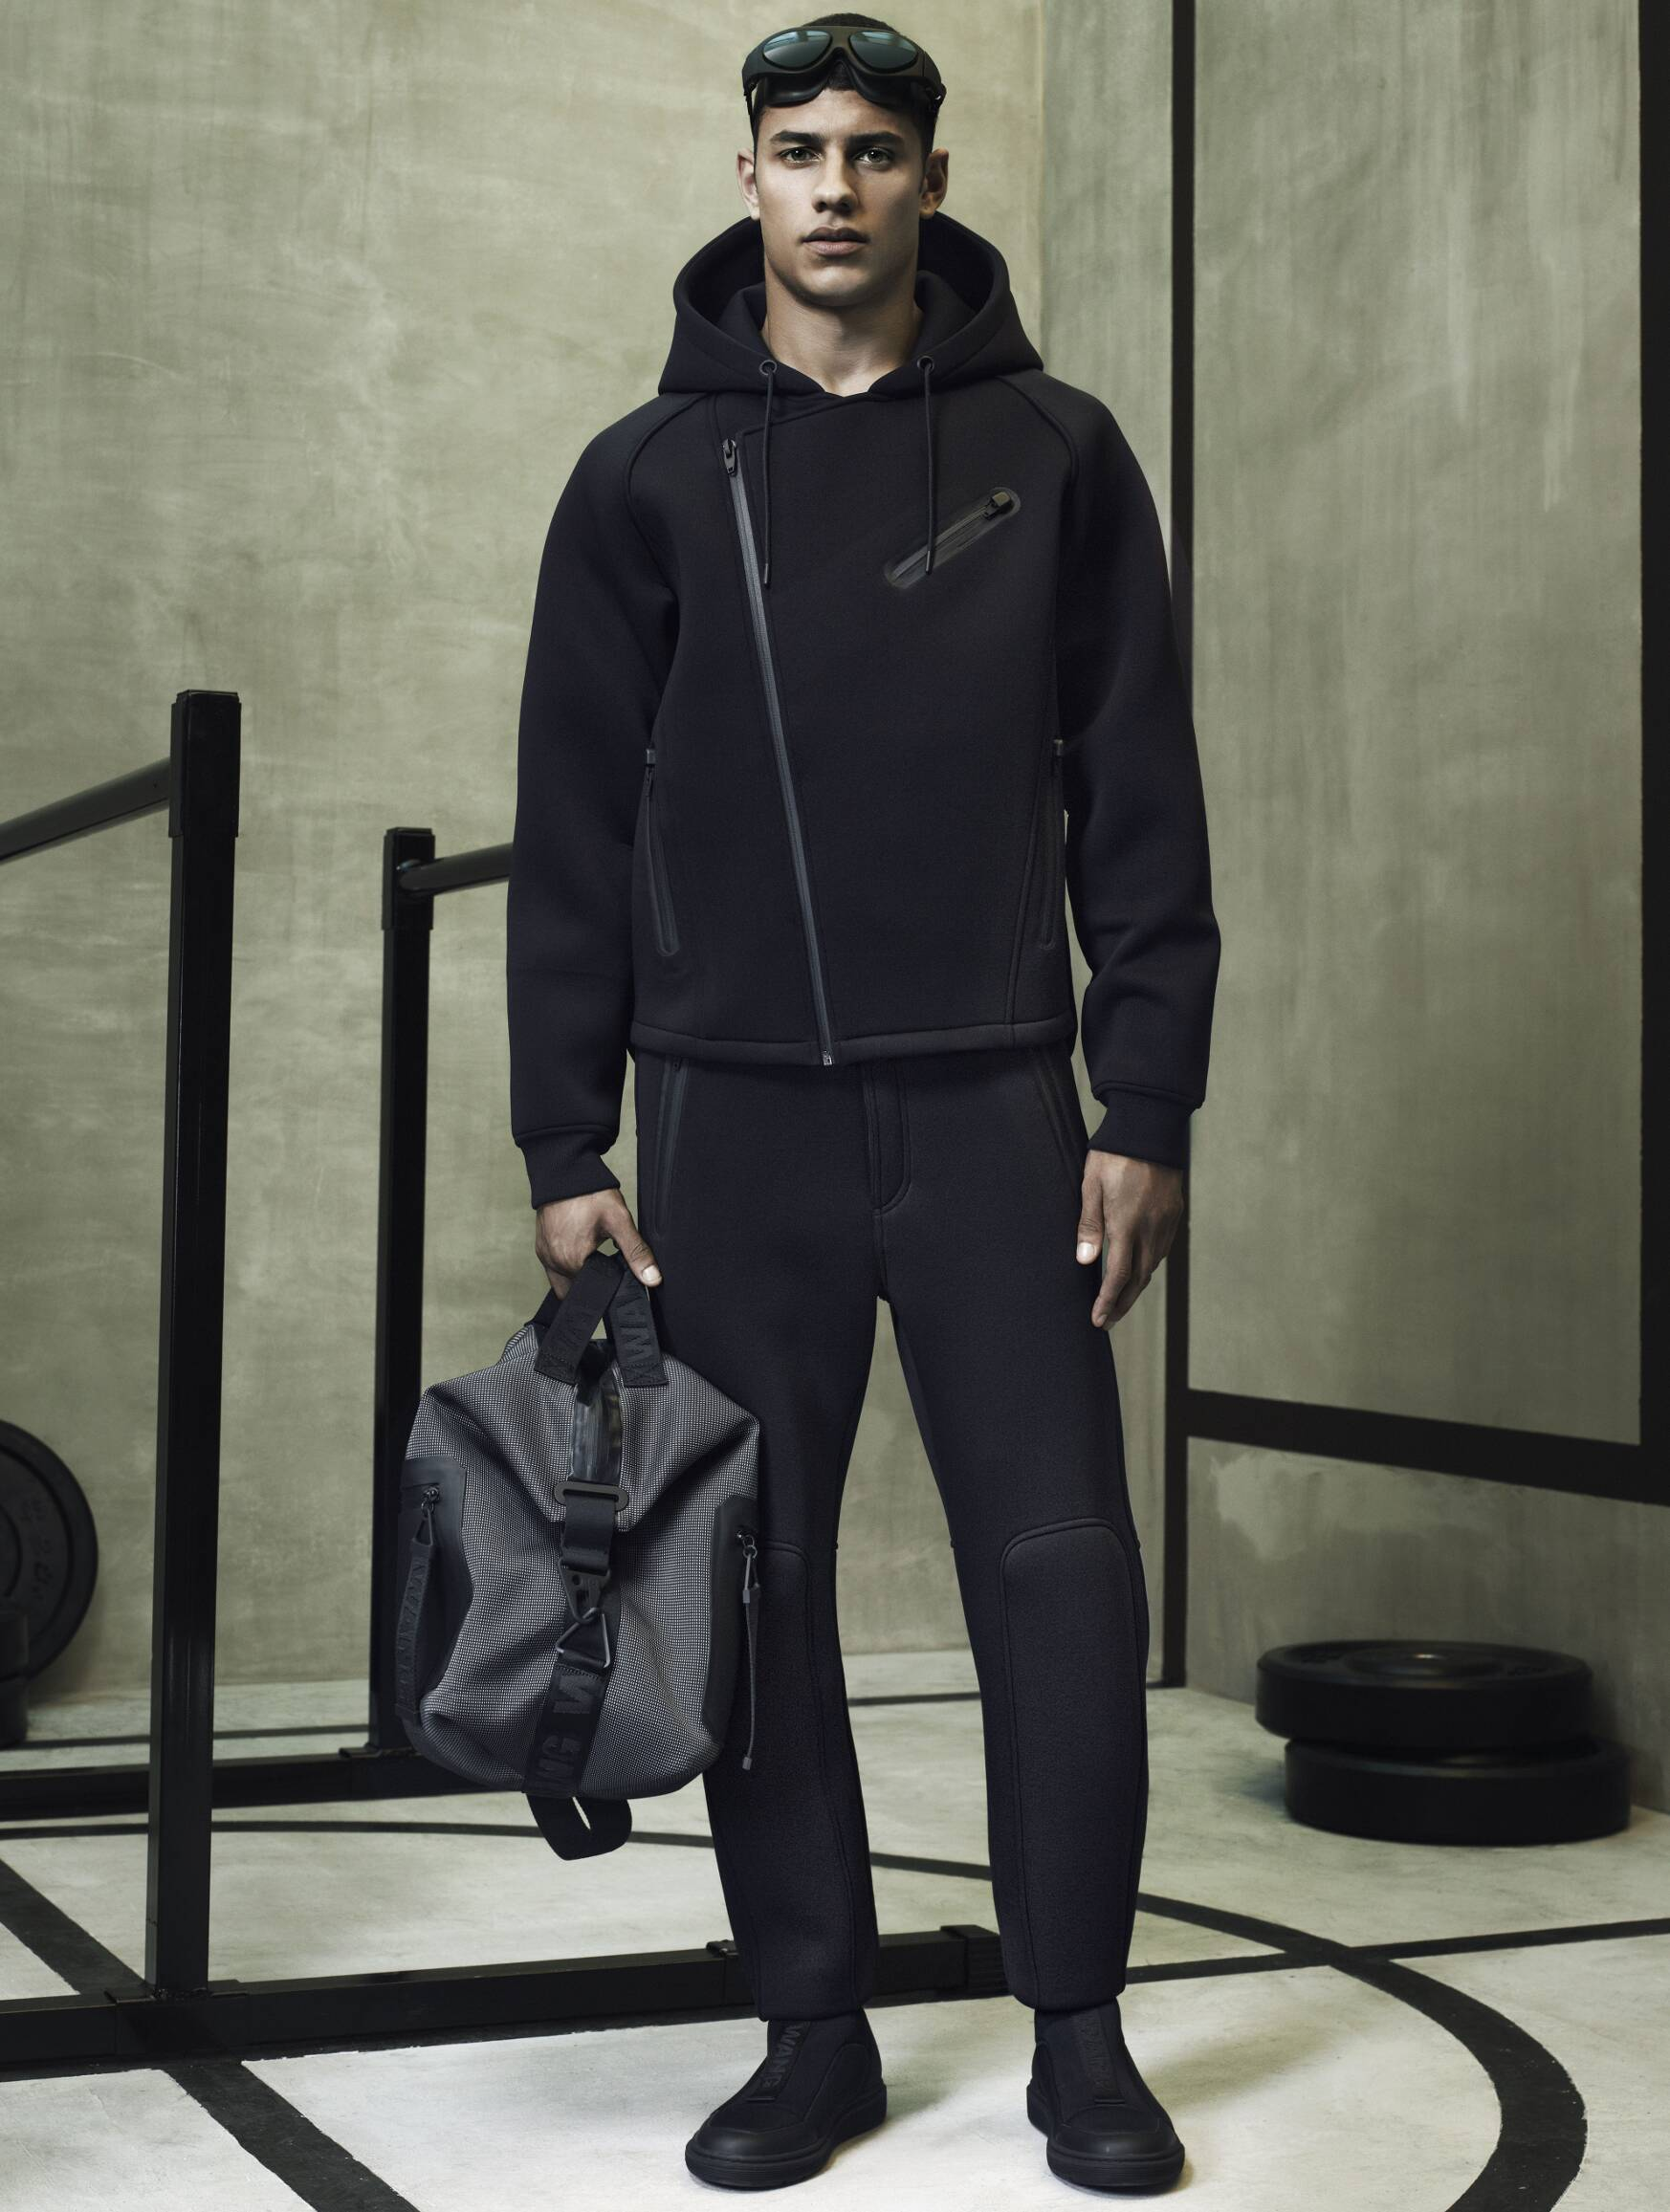 The Alexander Wang x H&M collection will feature apparel and accessories for women and men. Typical for his irreverent approach, Alexander Wang will propose a new take on the lifestyle product offering that goes beyond fashion.